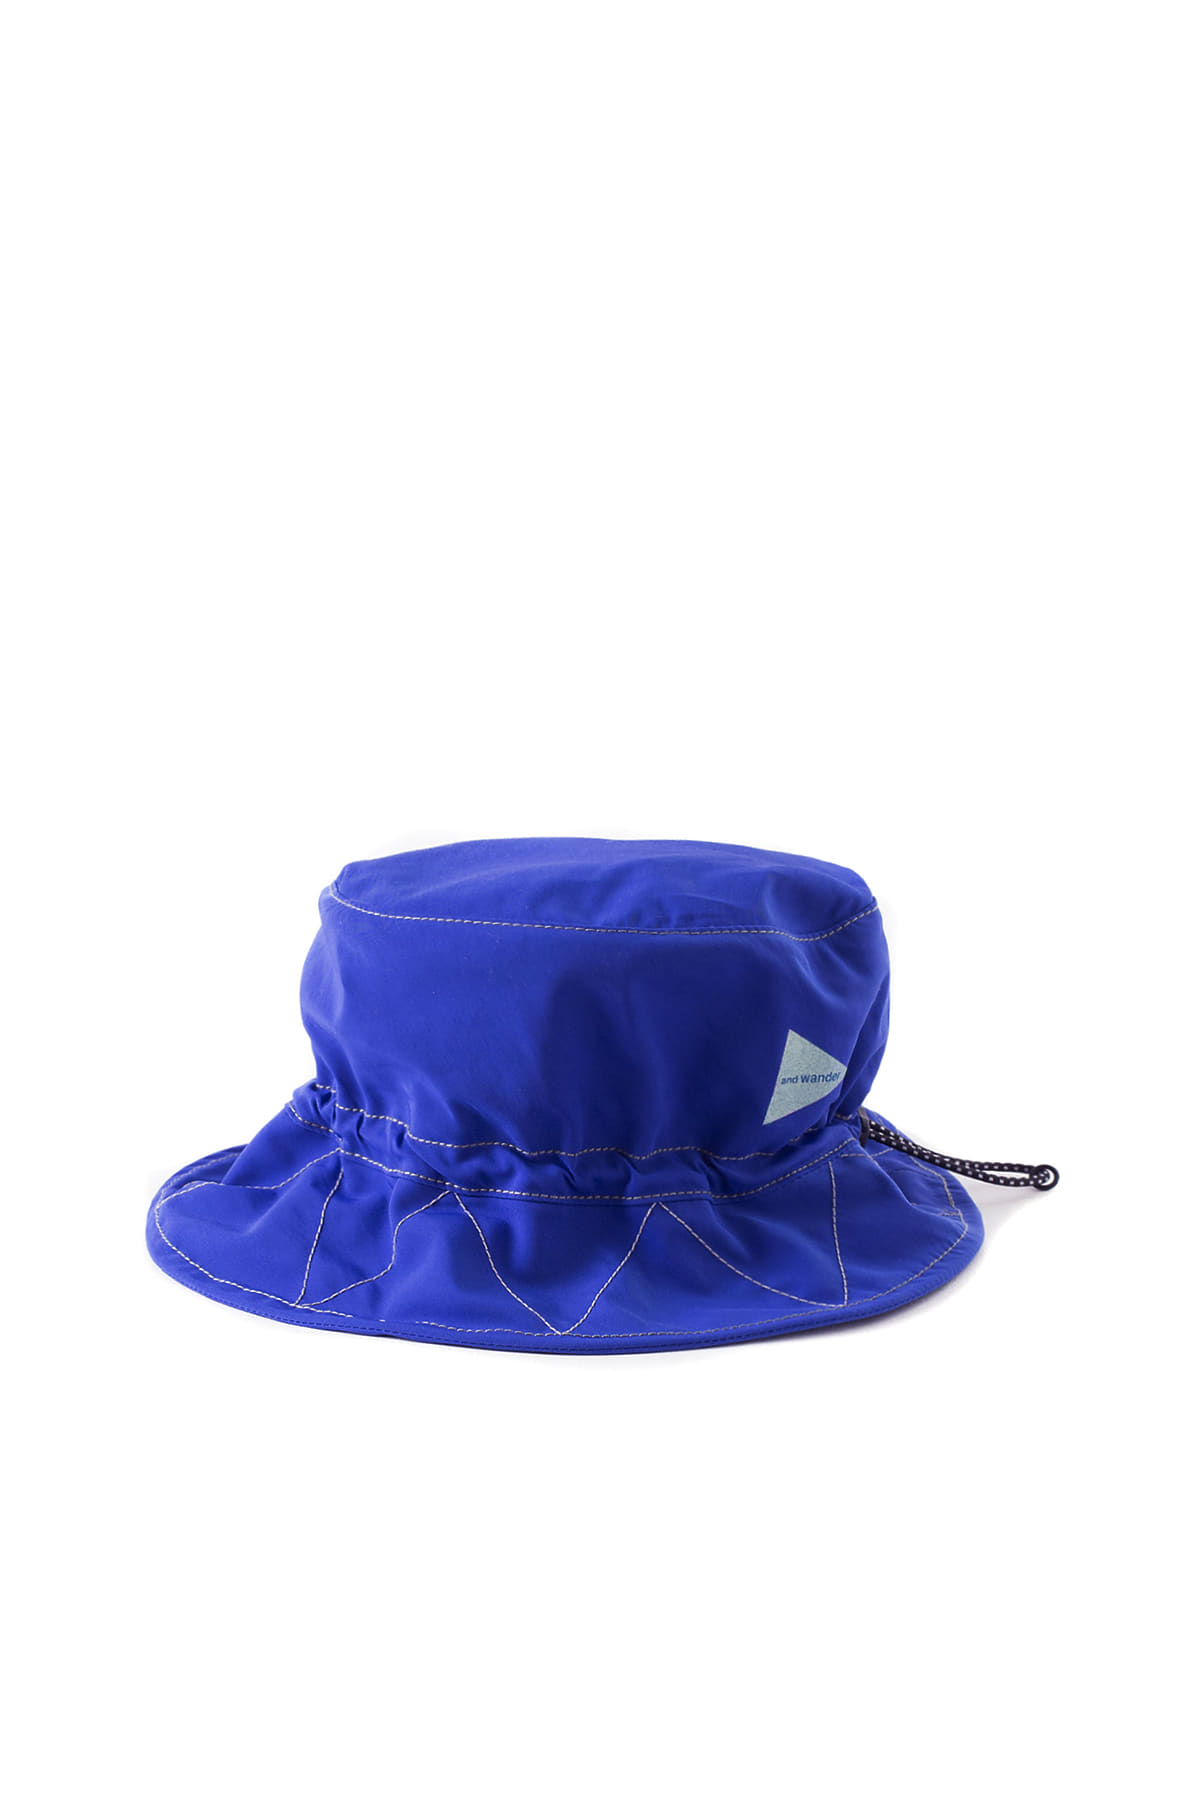 and wander : Cotton Nylon Hat (Blue)